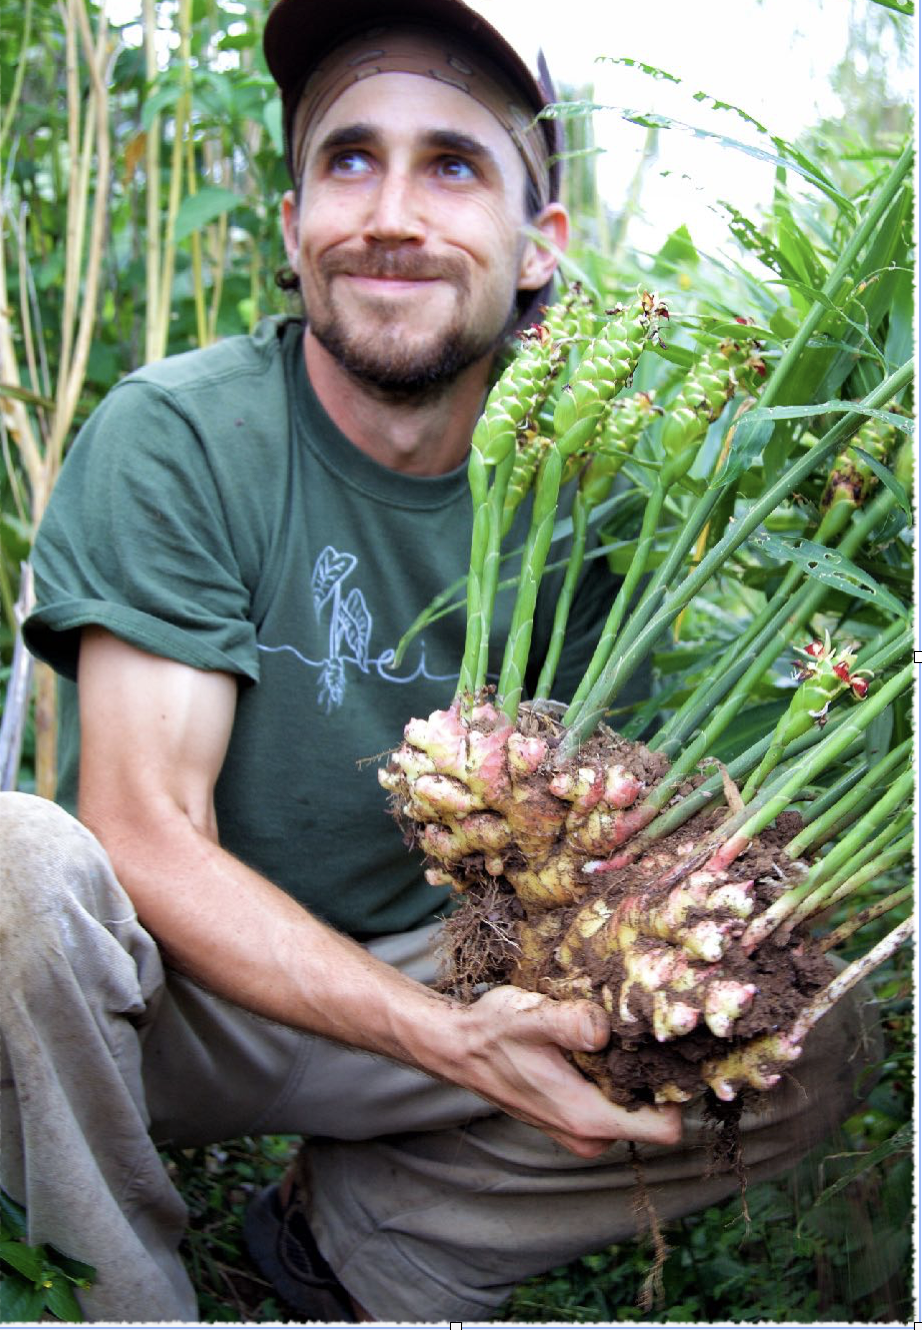 """Travis Dodson, 29- USA - Vision: To co-create a functional farm and living classroom to educate and inspire individuals from around the globe.""""I am passionate in cultivating a dynamic multi sensory natural learning environment that returns humanity to the wonder filled state of our foraging ancestors. My vision is to cultivate resiliency, diversity and abundance in a regenerative agroforestry system that restores the land while benefiting humans and the local ecology.With hyper diverse genetic material, we will be preserving plant genetics and installing them in a system with the potential for a legacy life span allowing the plants to naturalize and spread organically like a forest.""""For the past 4 years Travis has been living and working with Vanessa to grow our """"living classroom"""" and visionary farm/ campus on the Big Island Hawaii."""